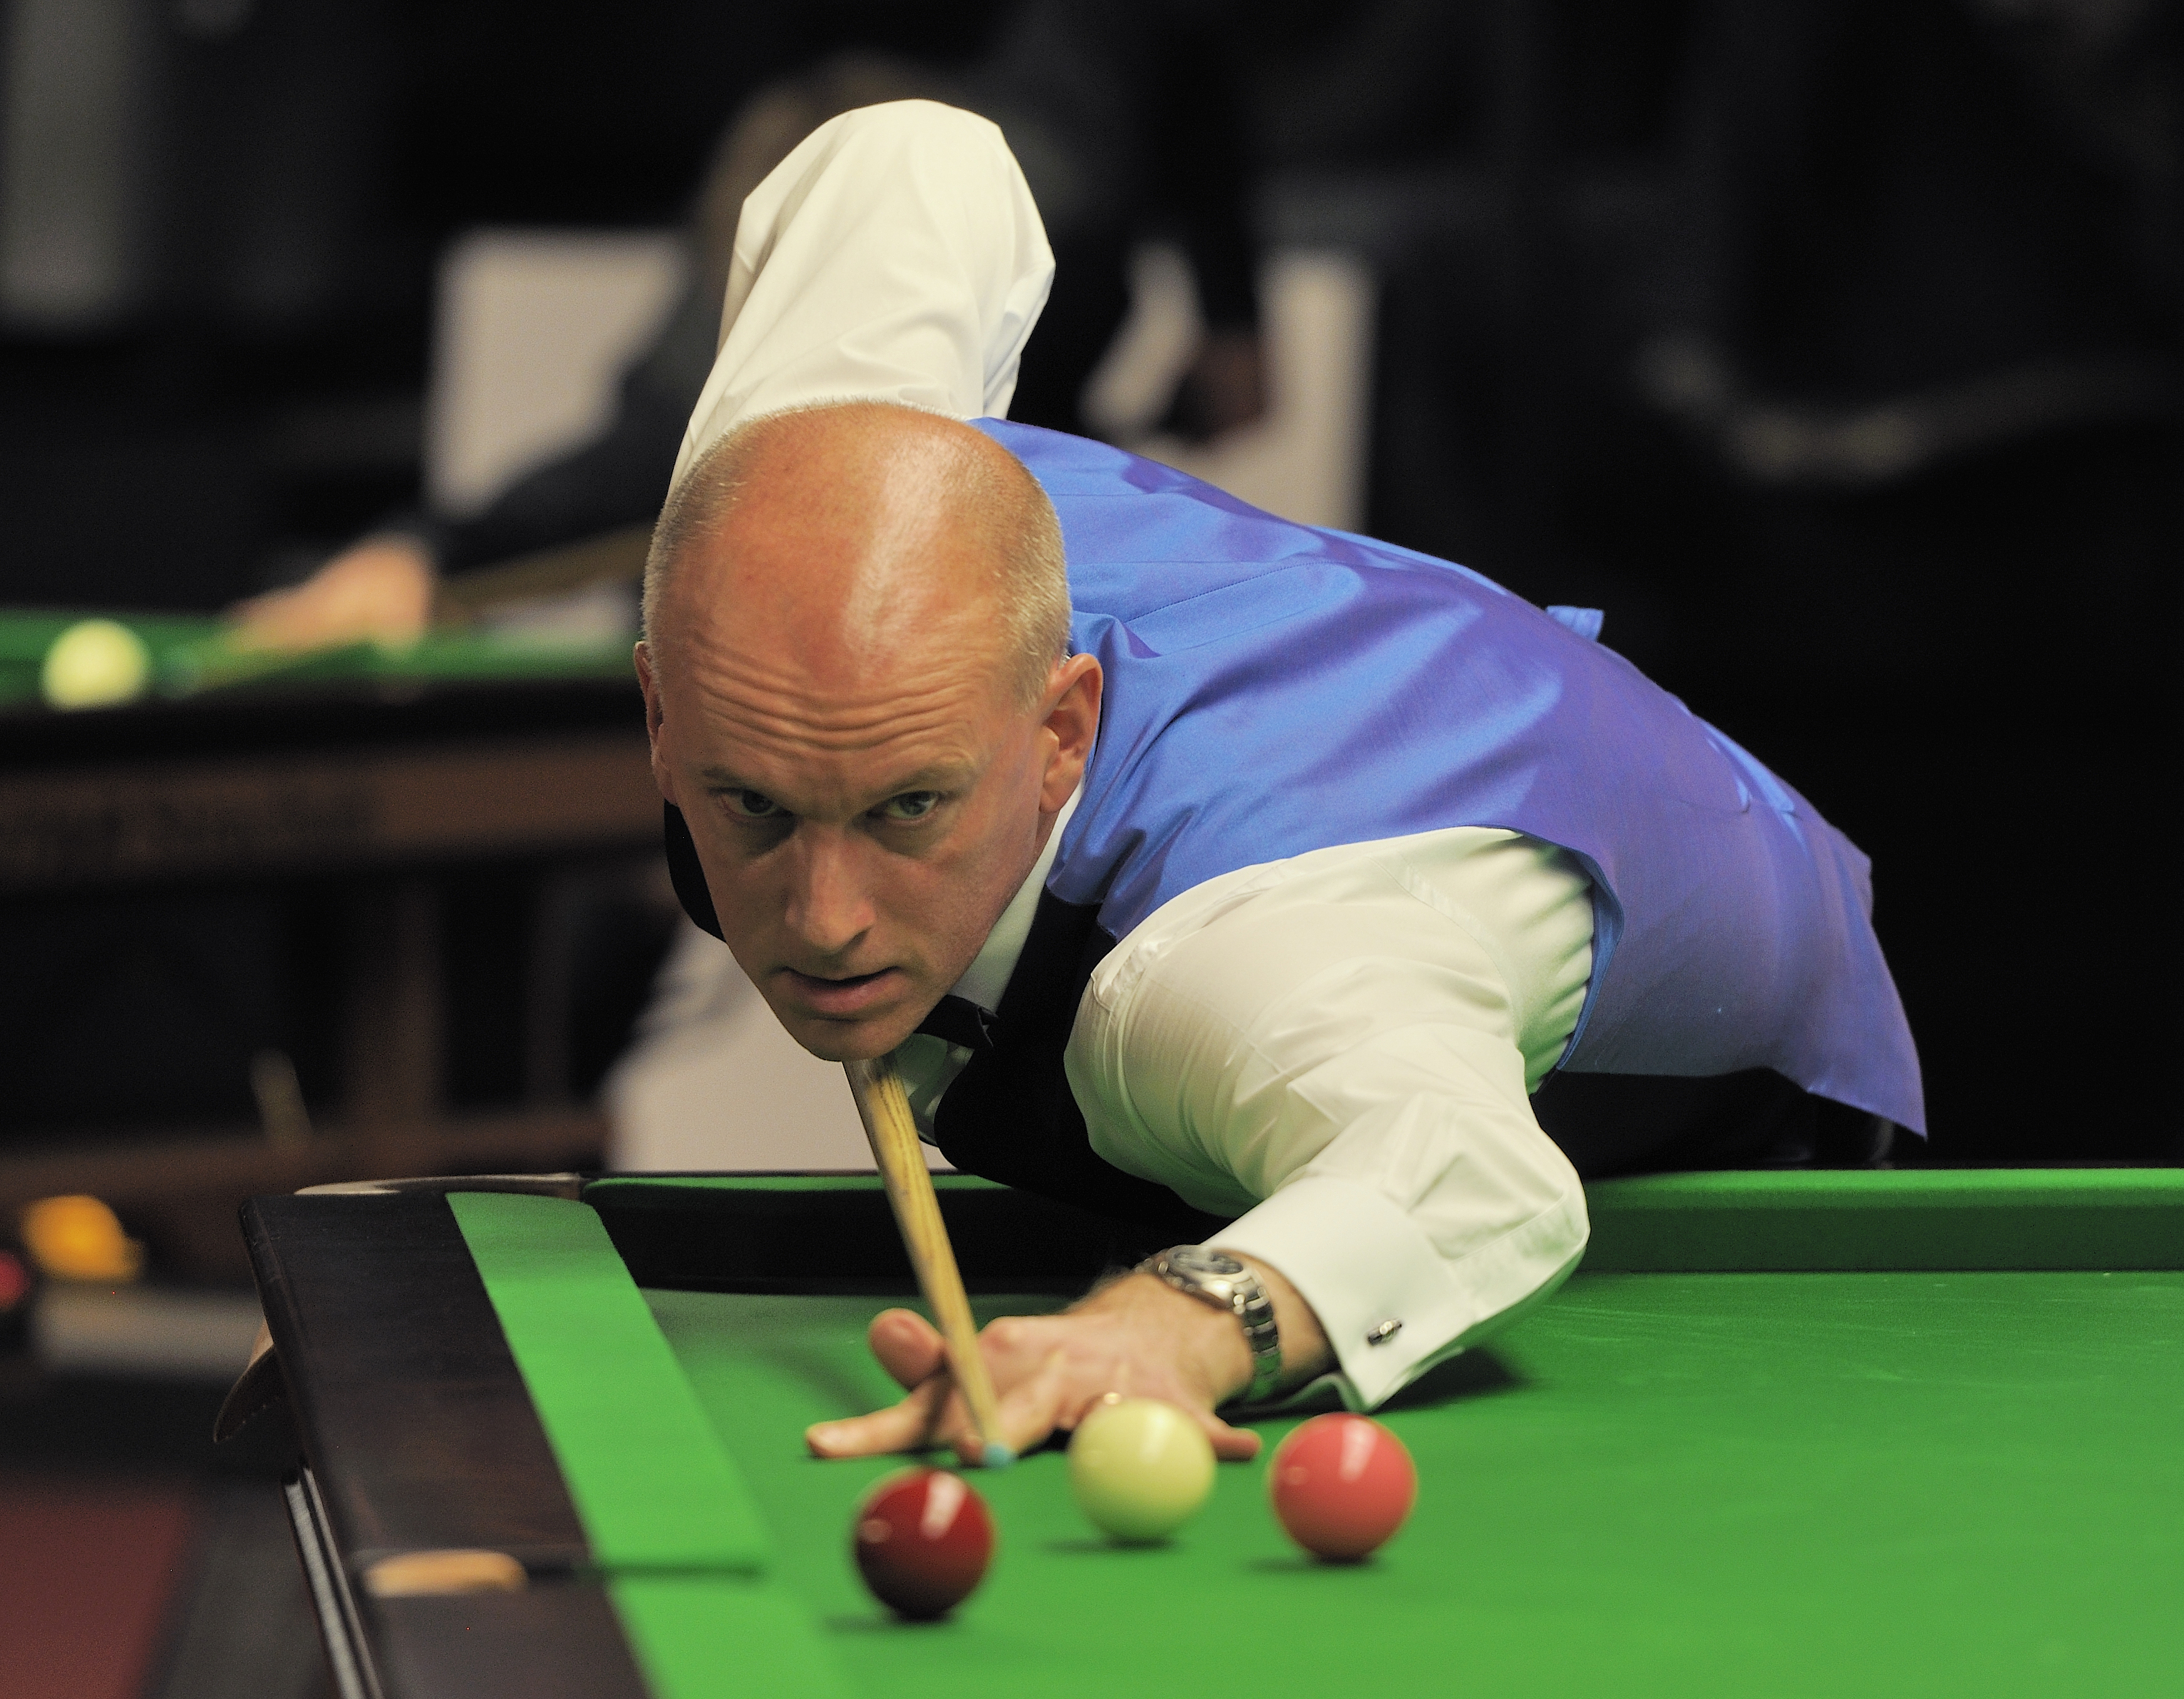 Peter Ebdon: British snooker player - Biography and Life